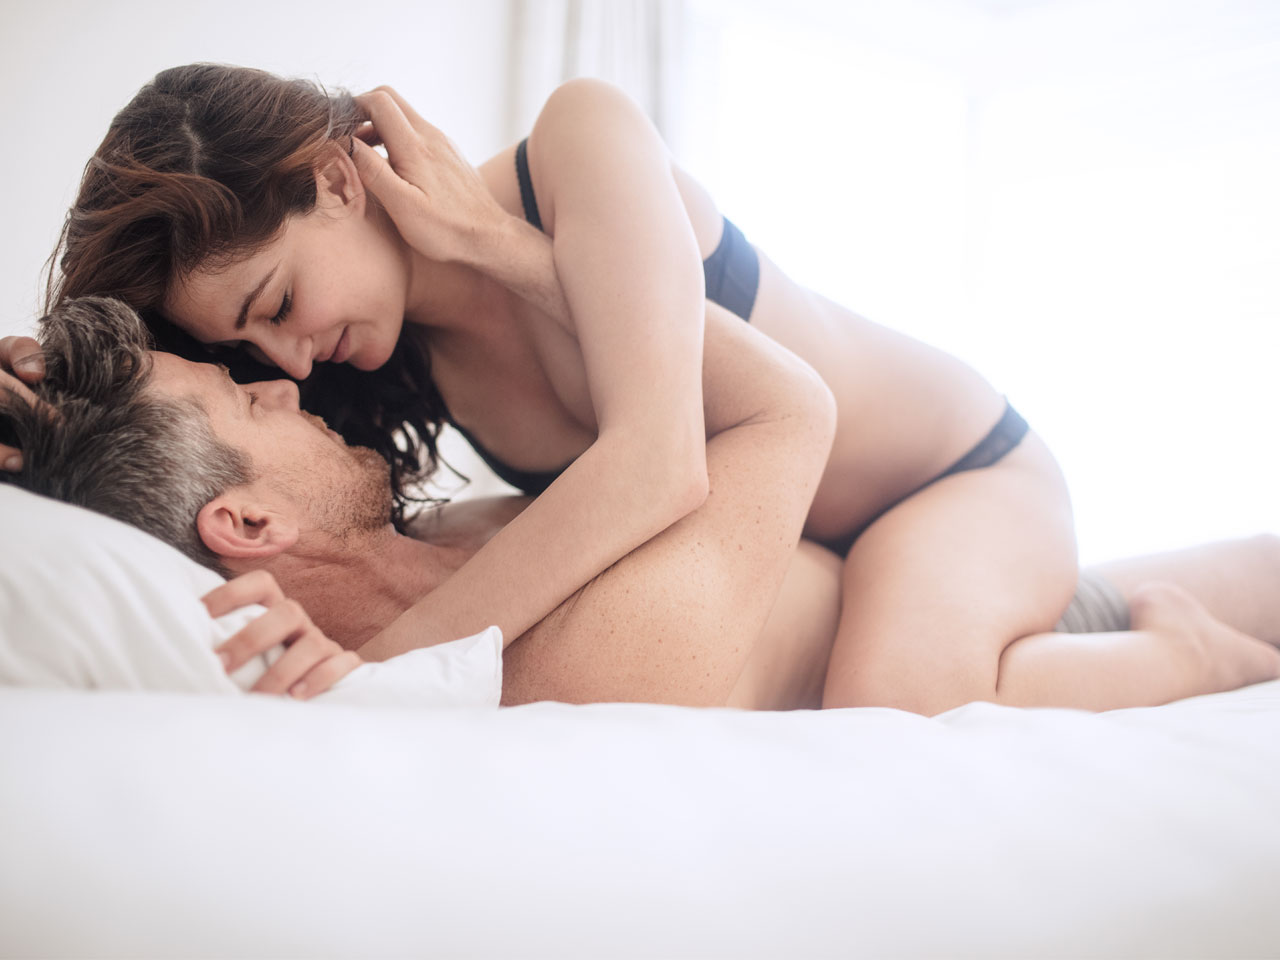 best porn videos for couples